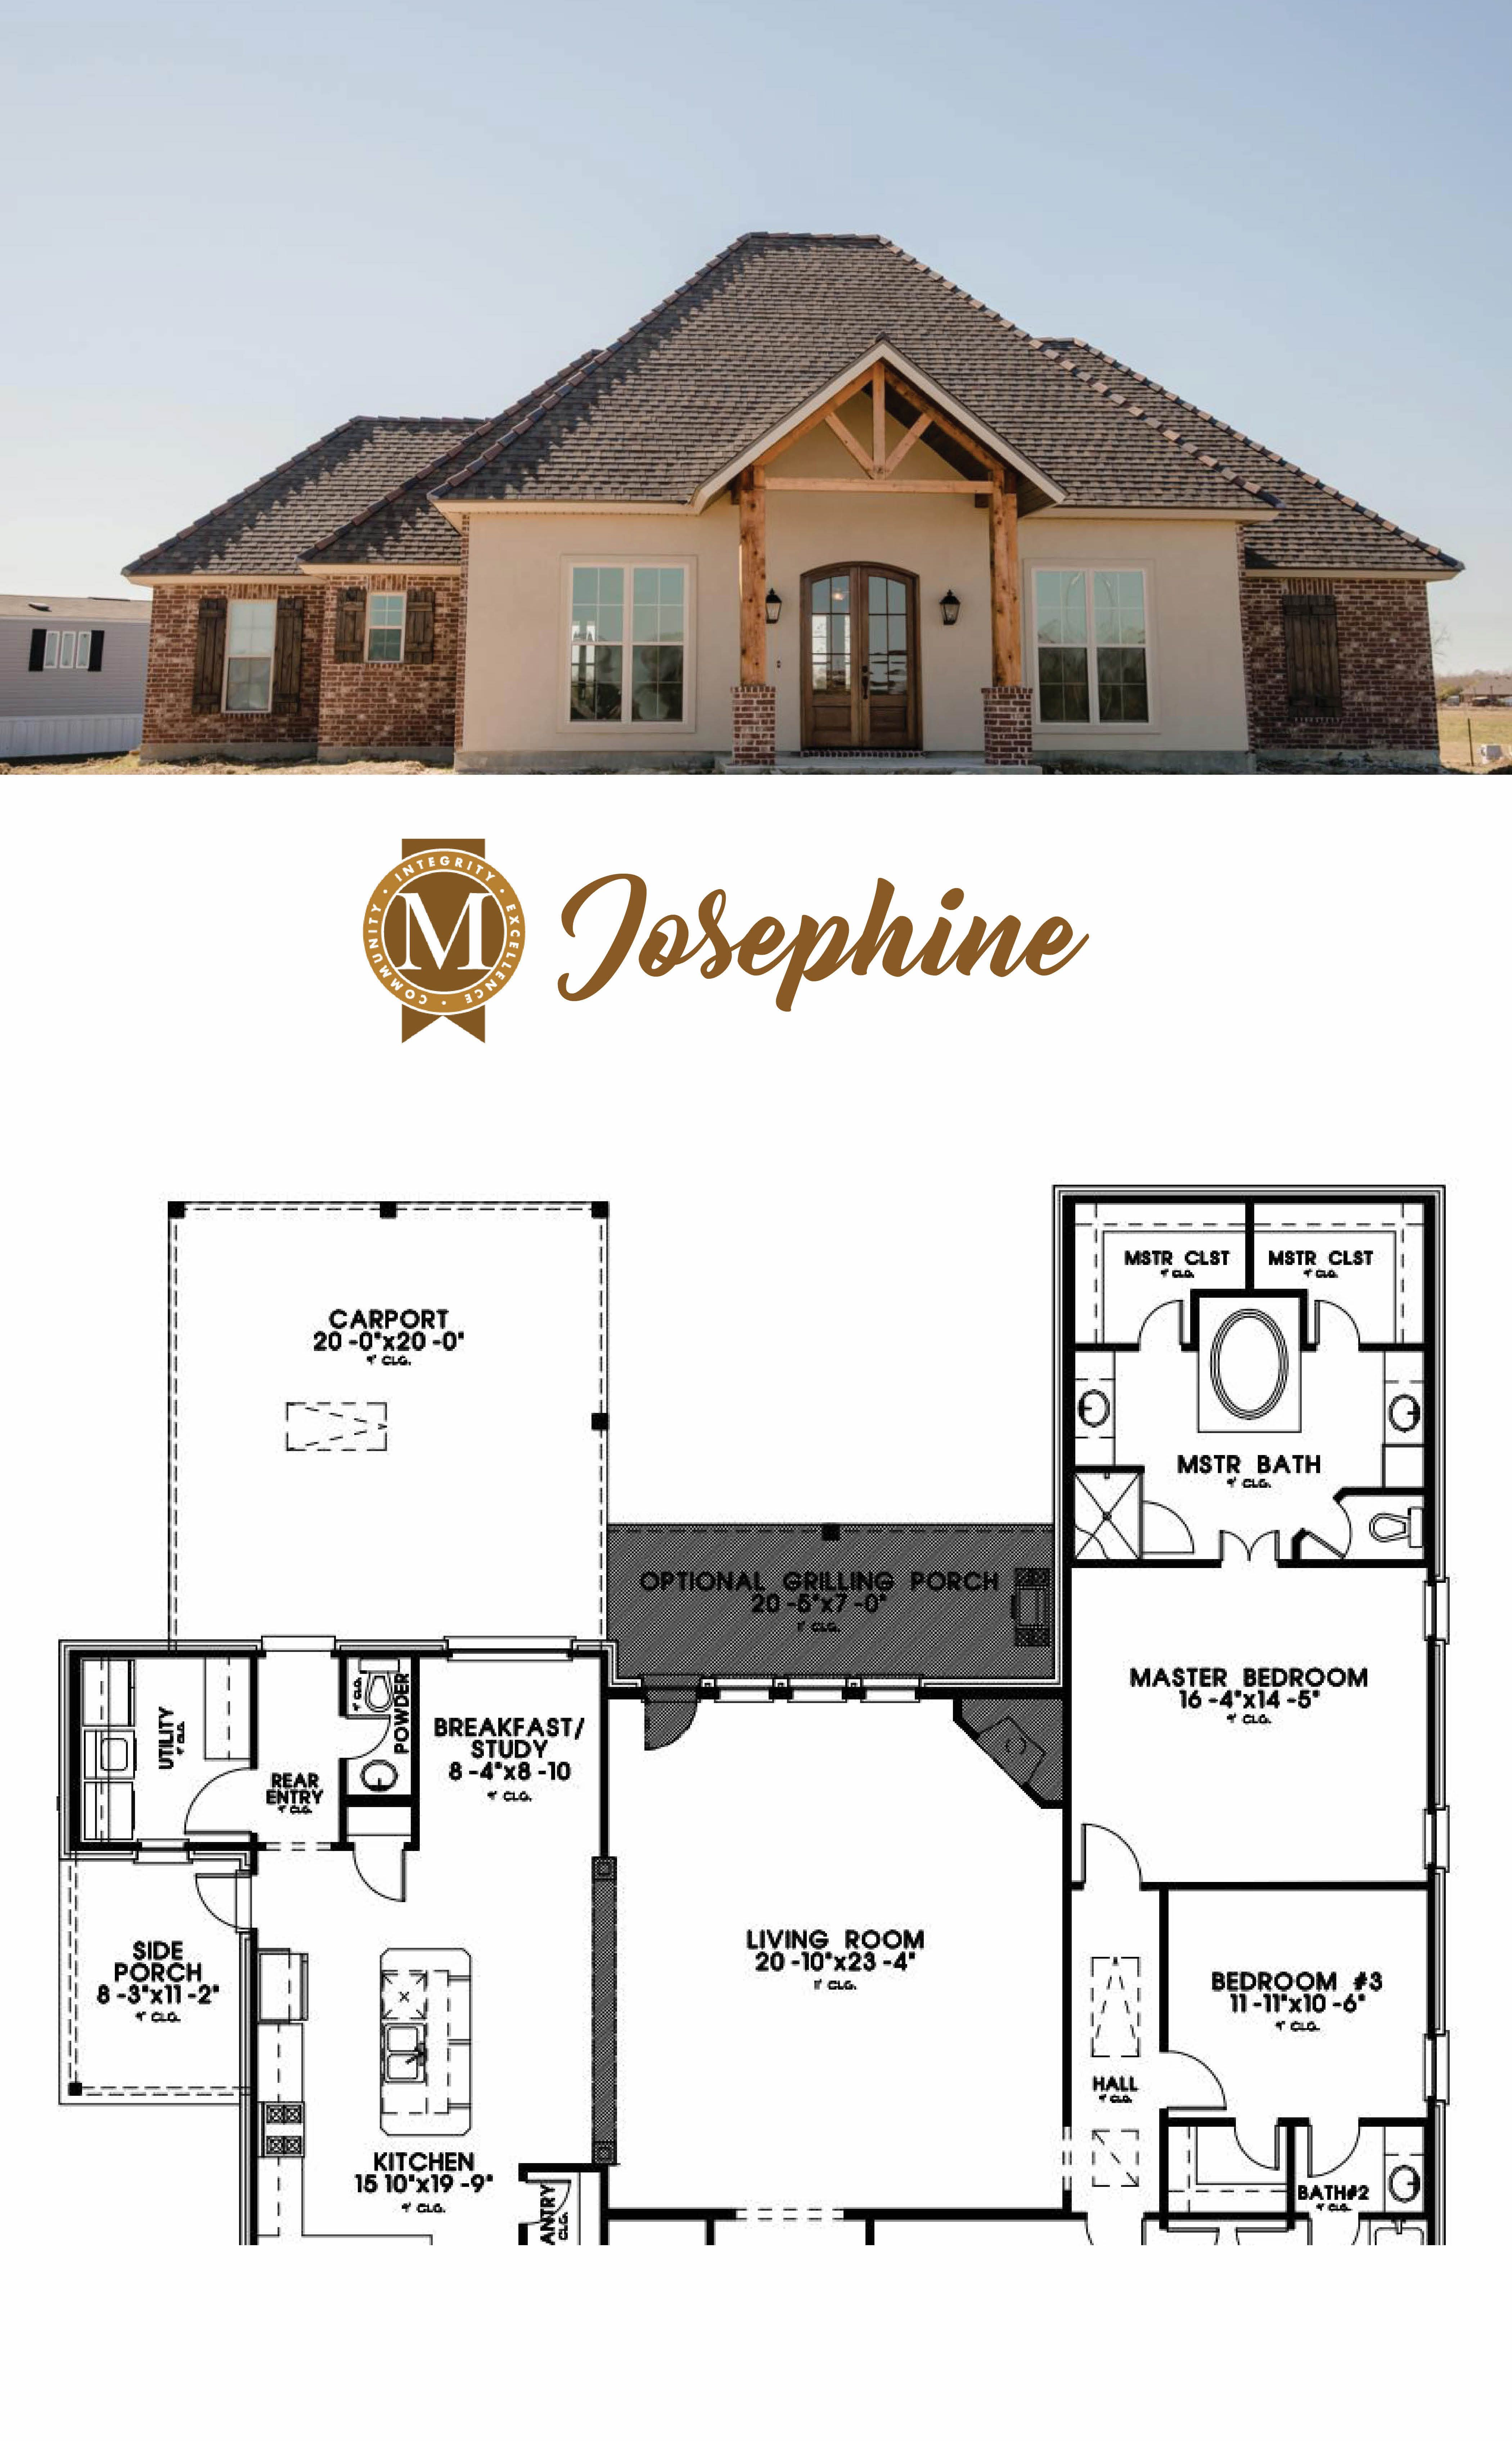 Josephine Floor Plan Living Sq Ft 2 472 Bedrooms 3 Baths 2 5 Lake Charles Lafayette Baton Rouge Louisiana House Roof Design Garage House Plans House Plans